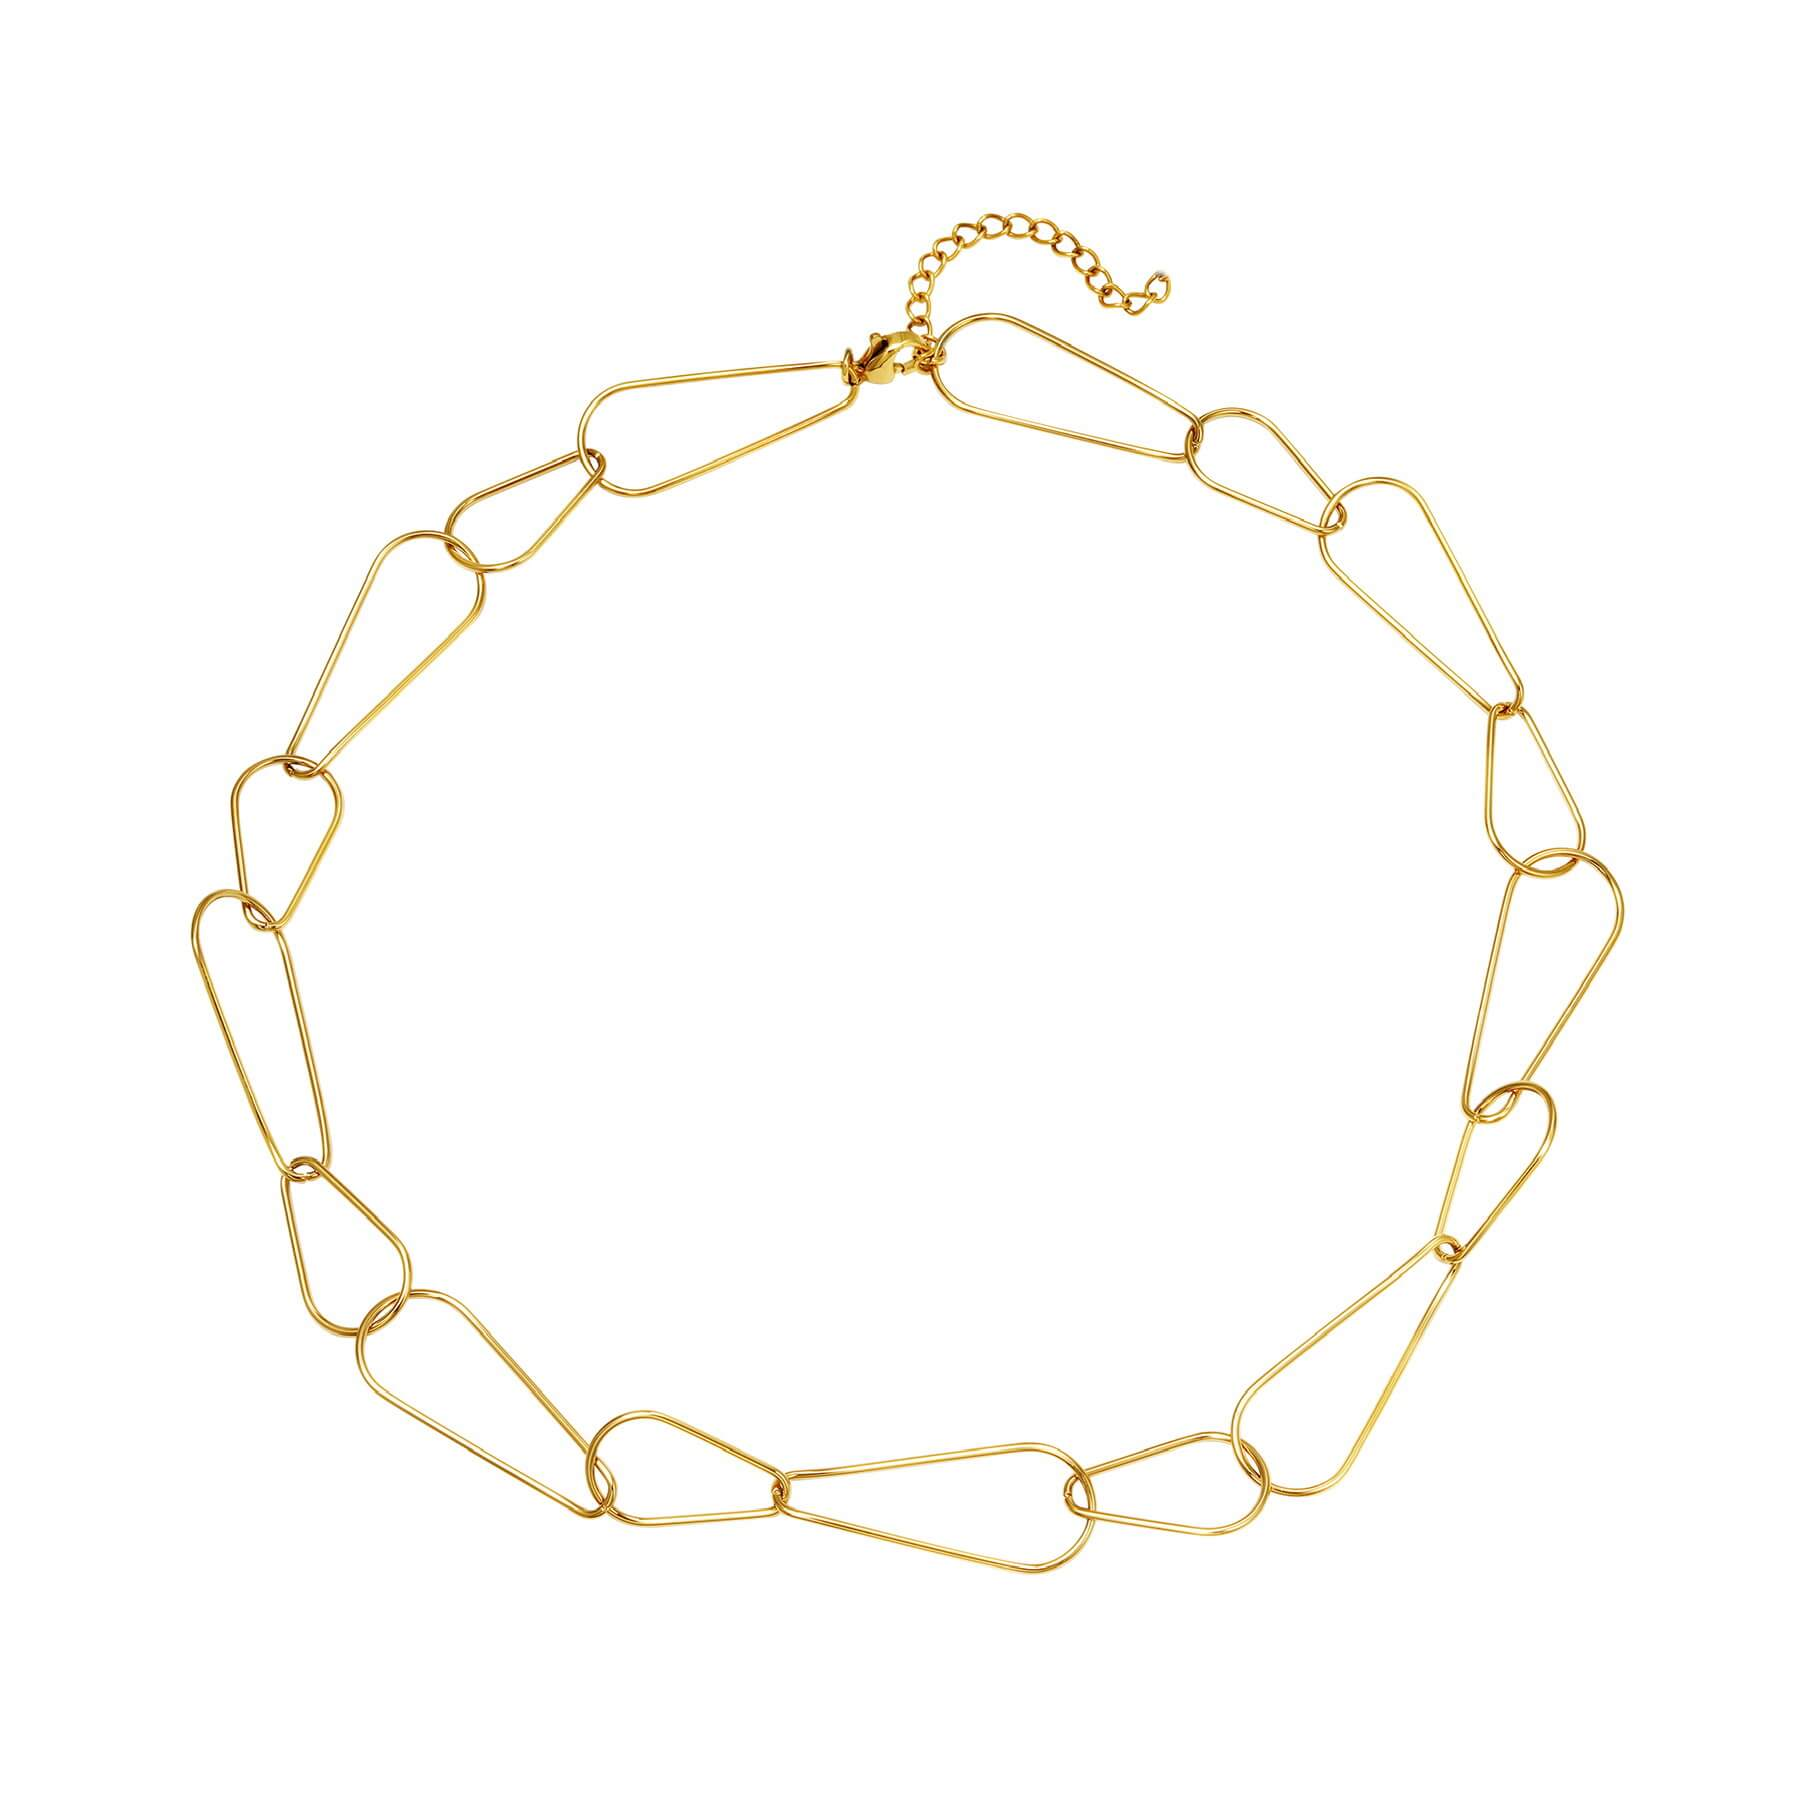 Kette JOURNEY in Gold